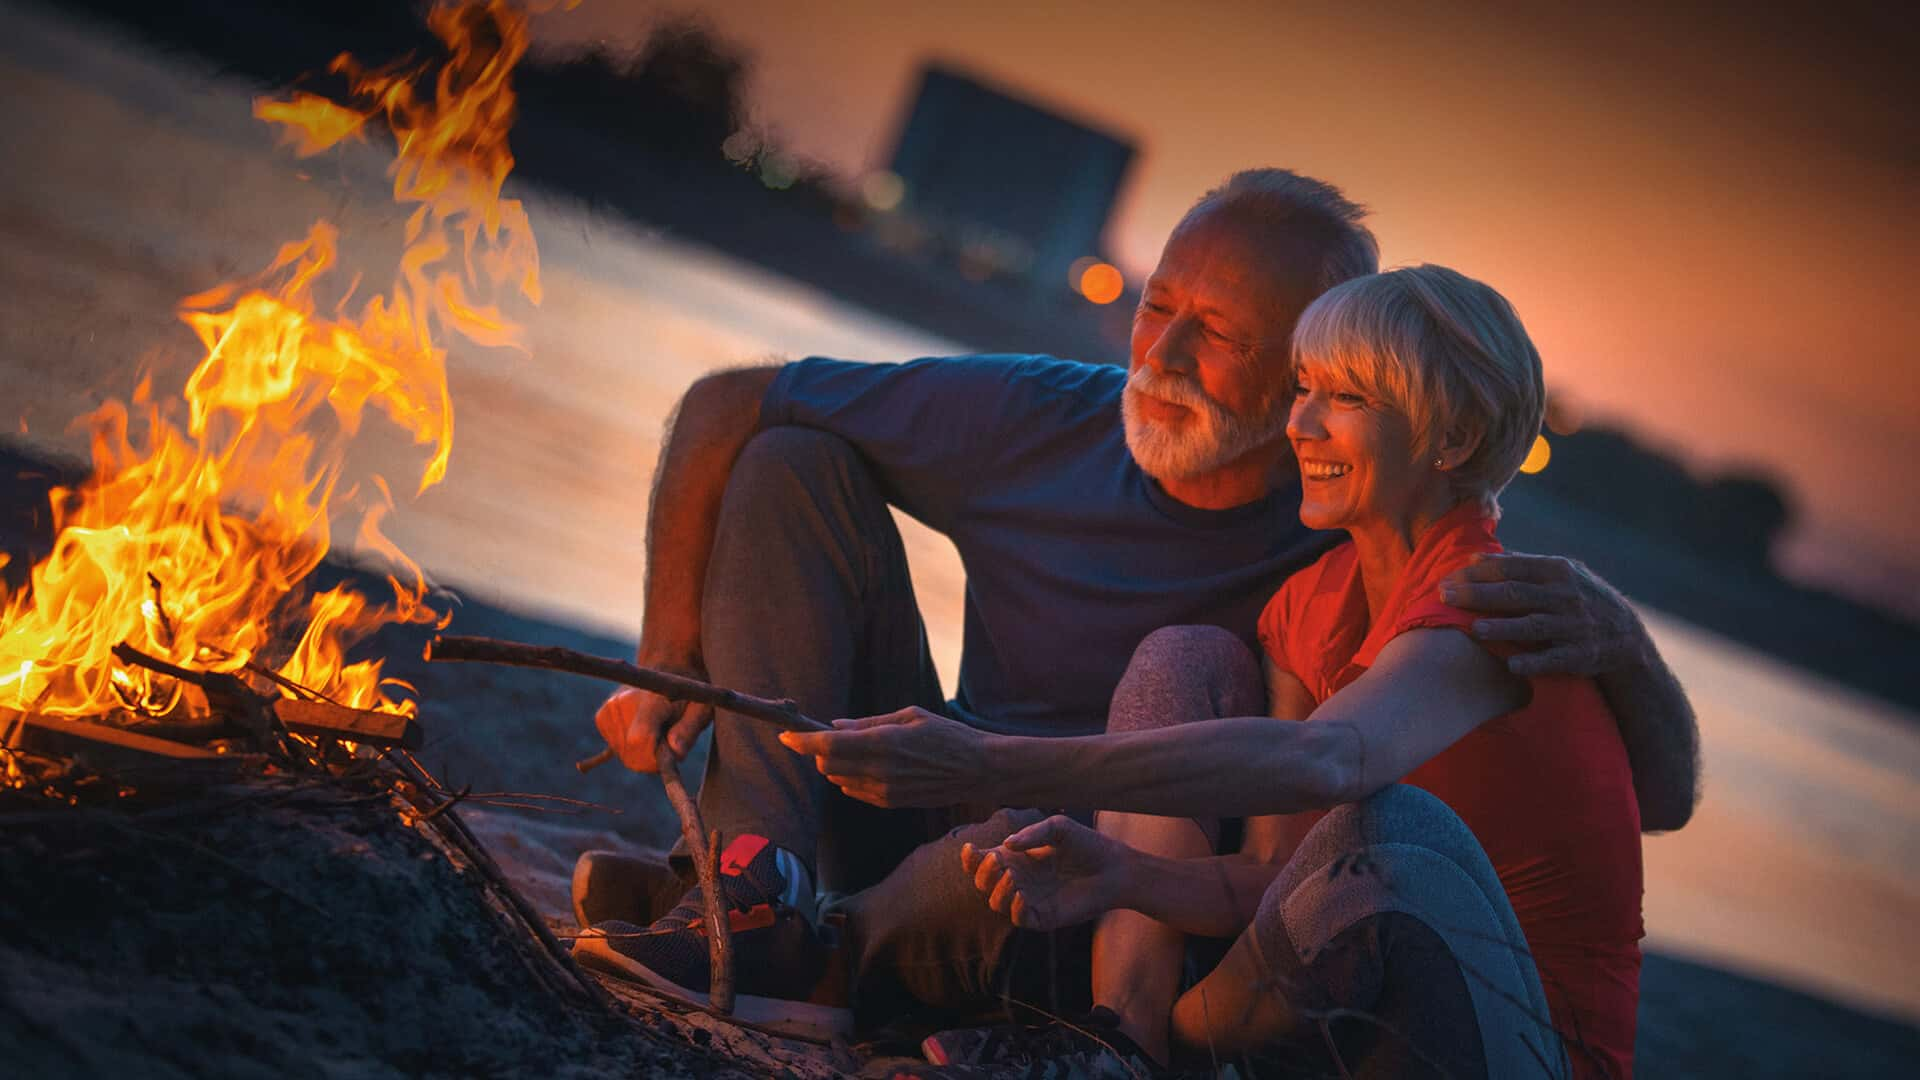 60s dating symbolized by a happy couple sitting in front of a campfire in UK